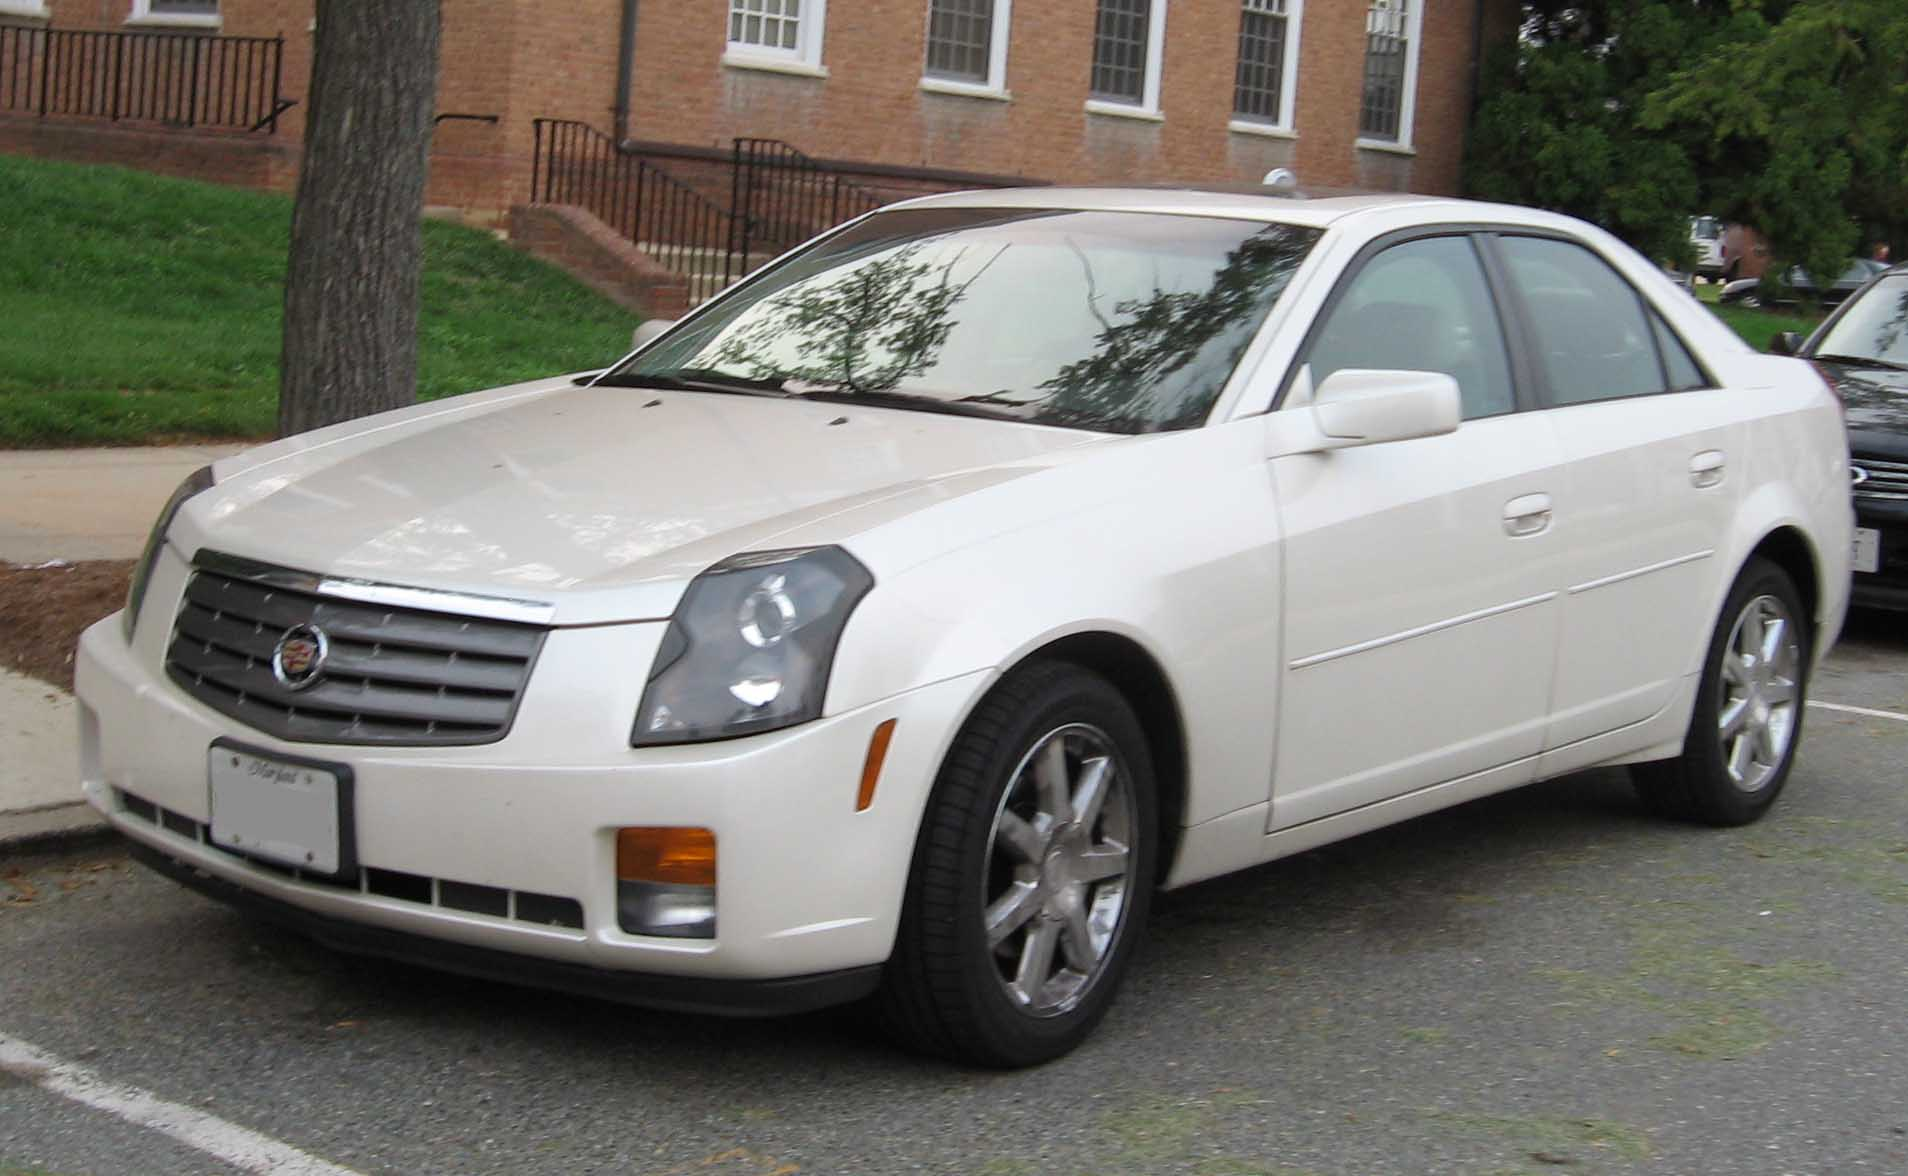 Cadillac CTS Wallpaper For Desktop Free